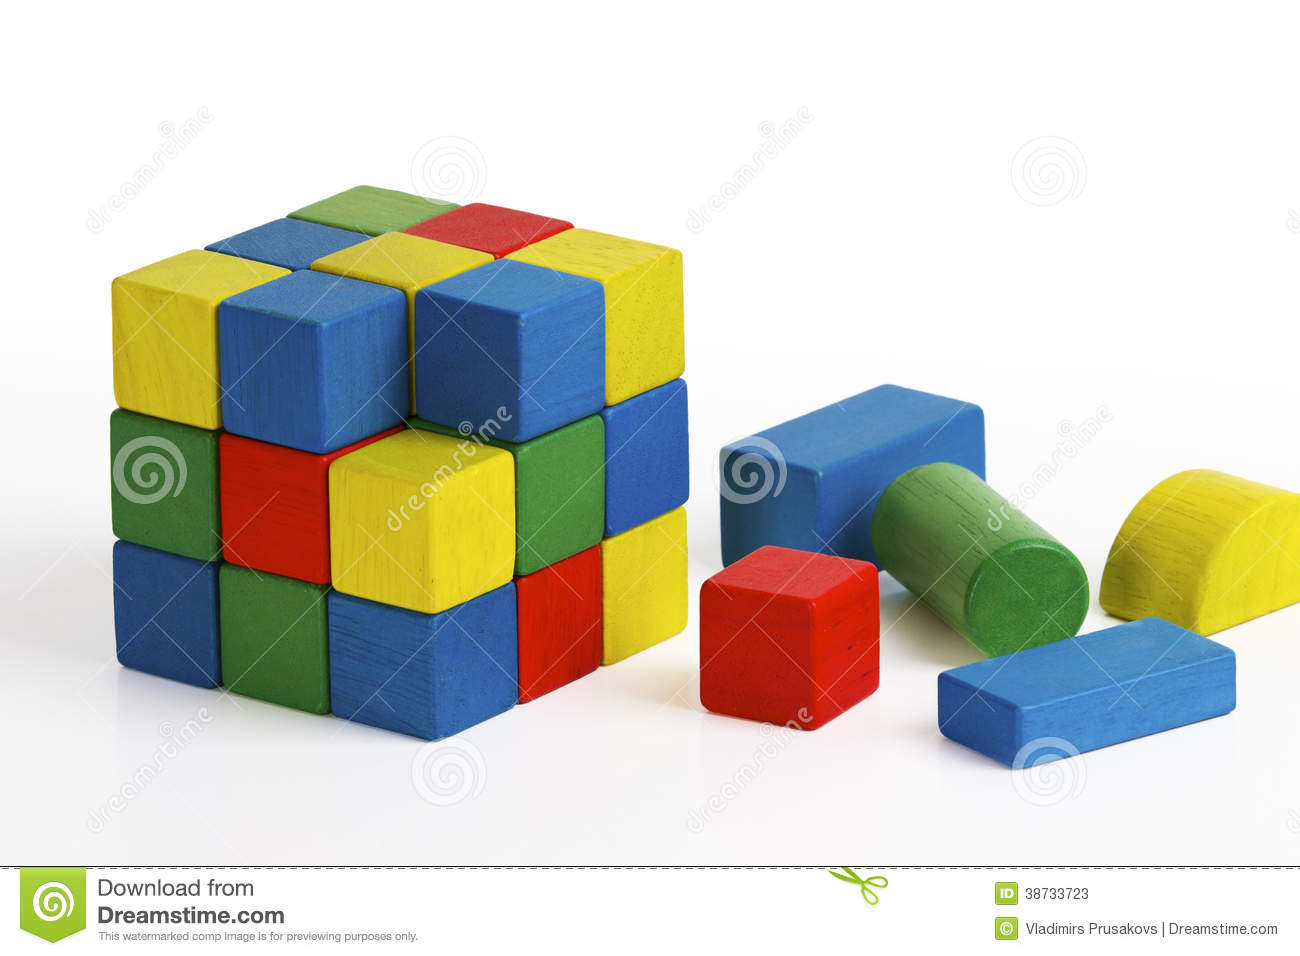 Jigsaw Puzzle Cube Toy, Multicolor Wooden Blocks Editorial Stock Photo - Image: 38733723